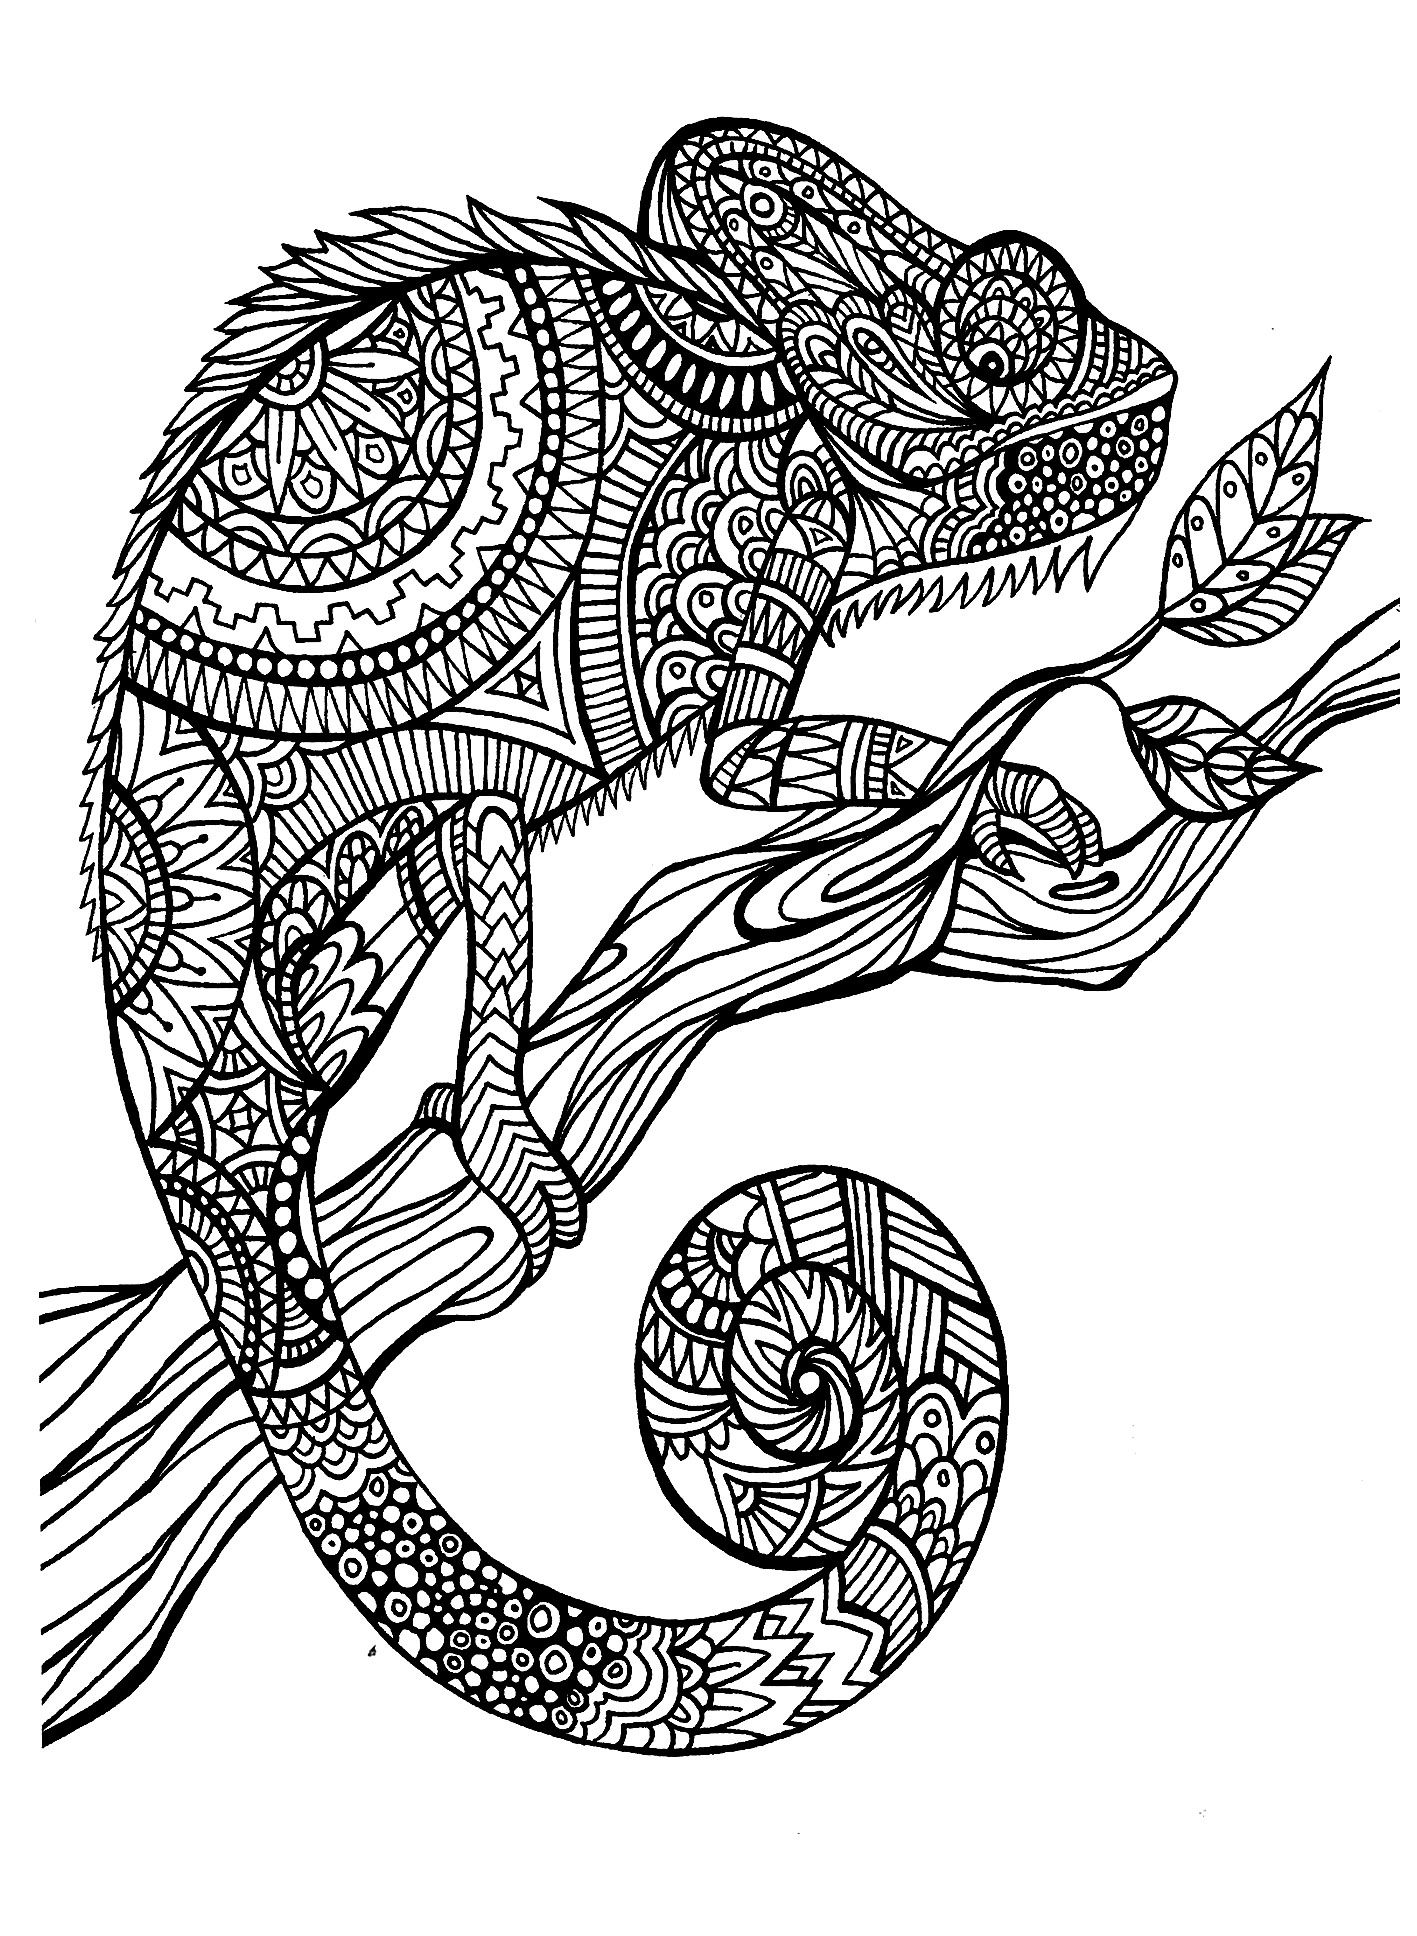 Animal Coloring Pages For Adults Raskraski S Zhivotnymi Knizhka Raskraska Raskraski